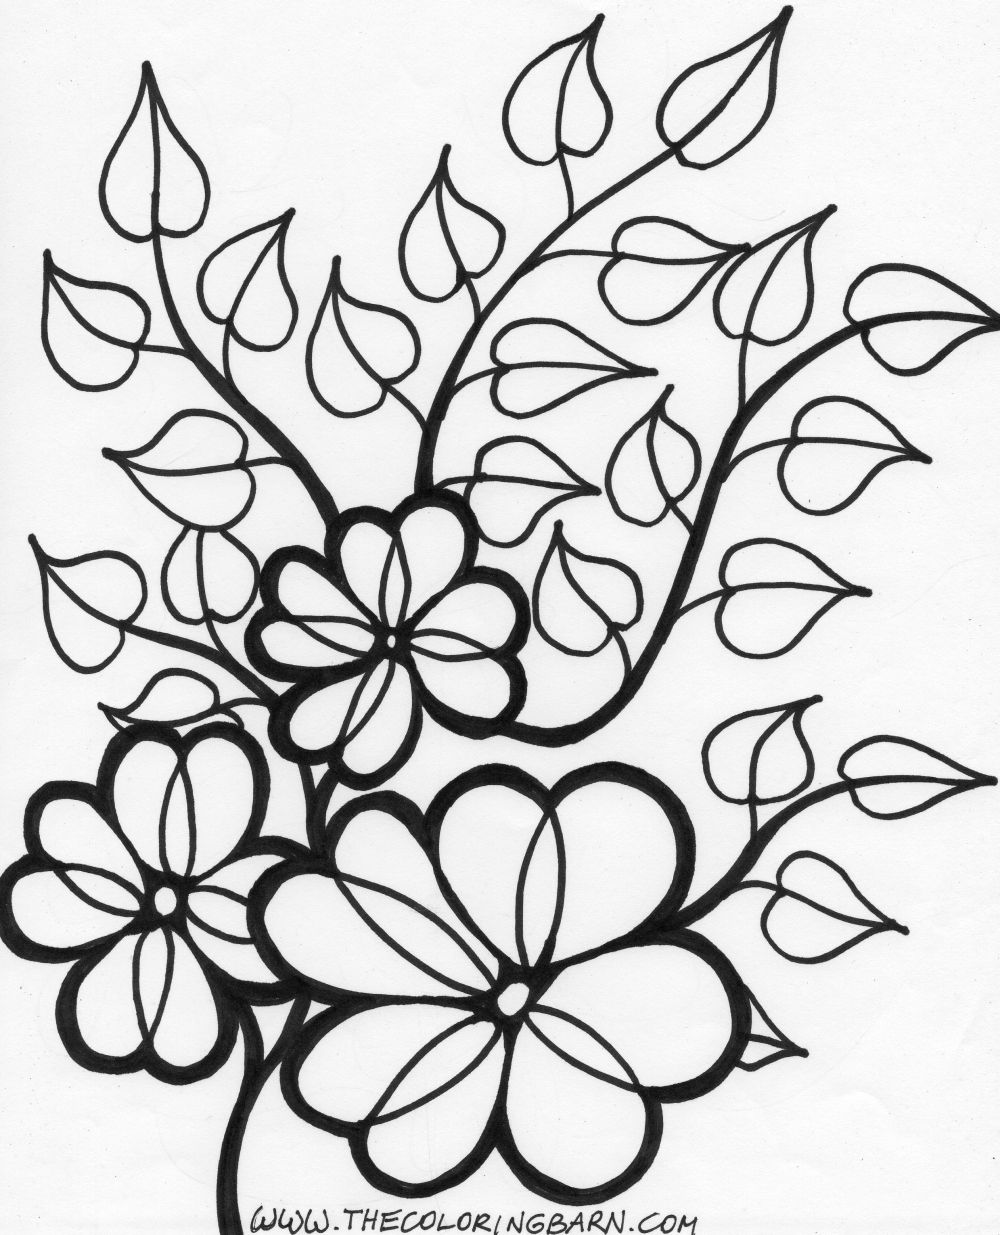 1000x1235 Cool Idea Flower Printable Coloring Pages Top Best Color